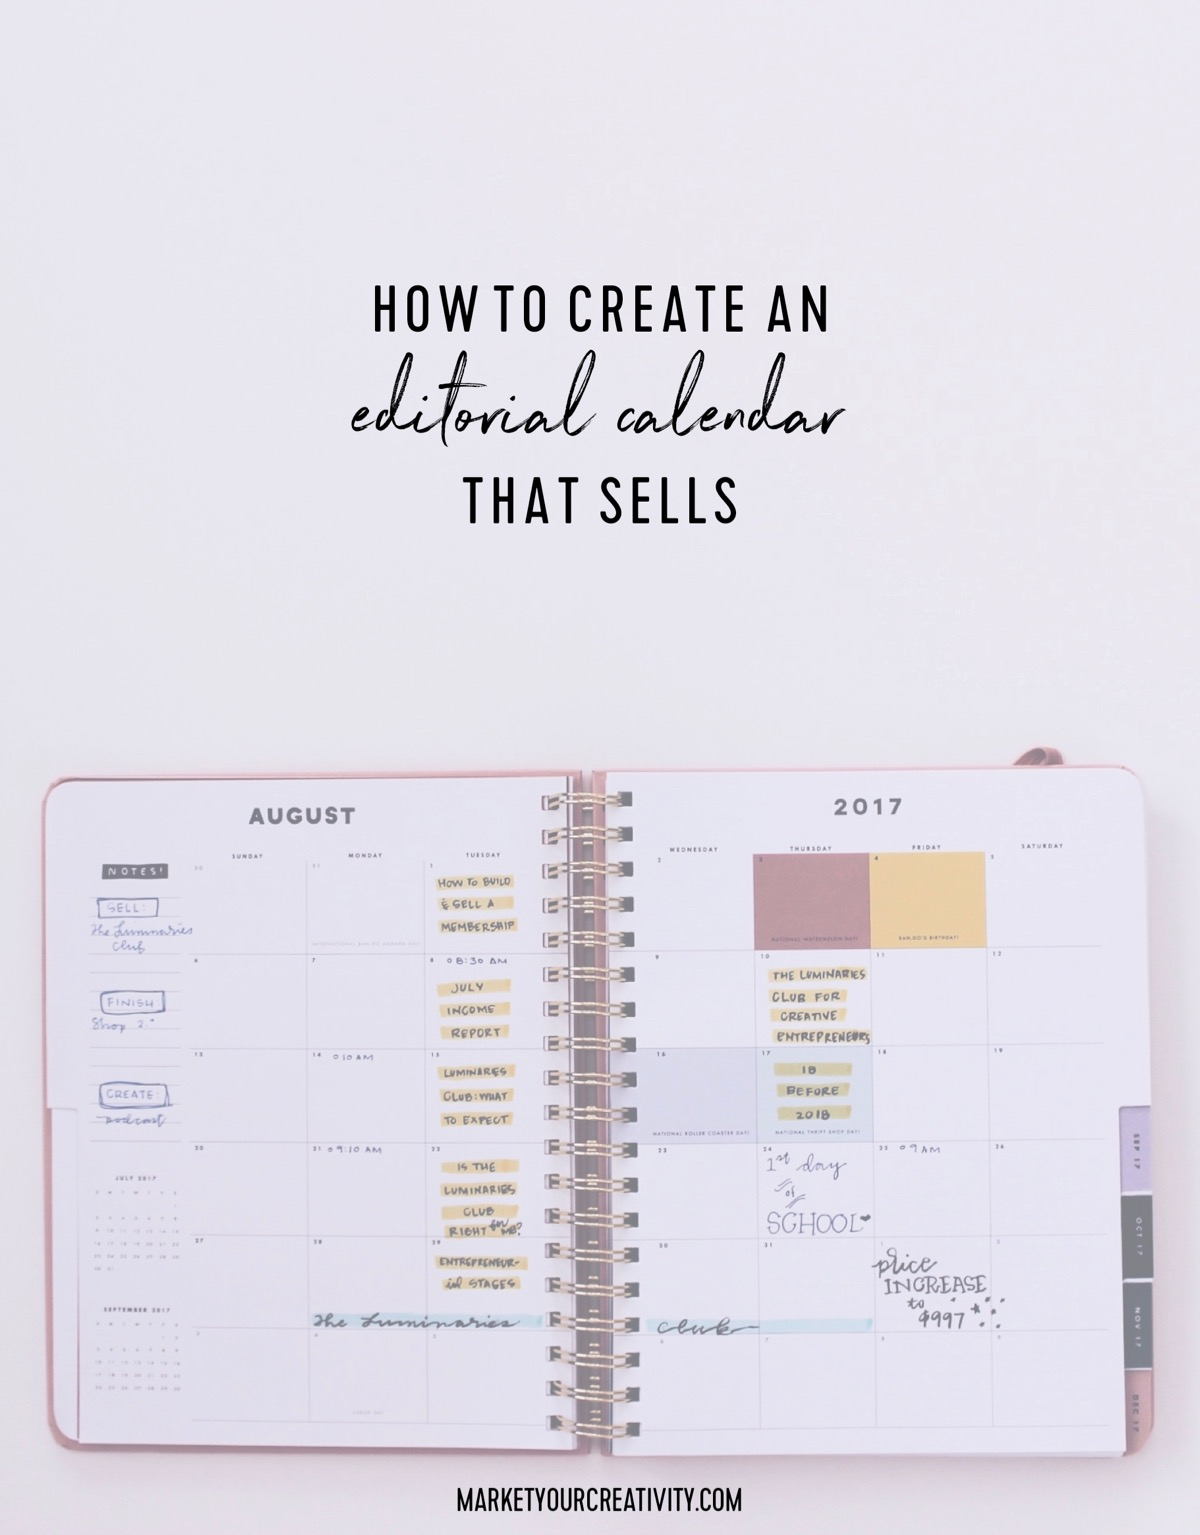 How to create an editorial calendar that sells